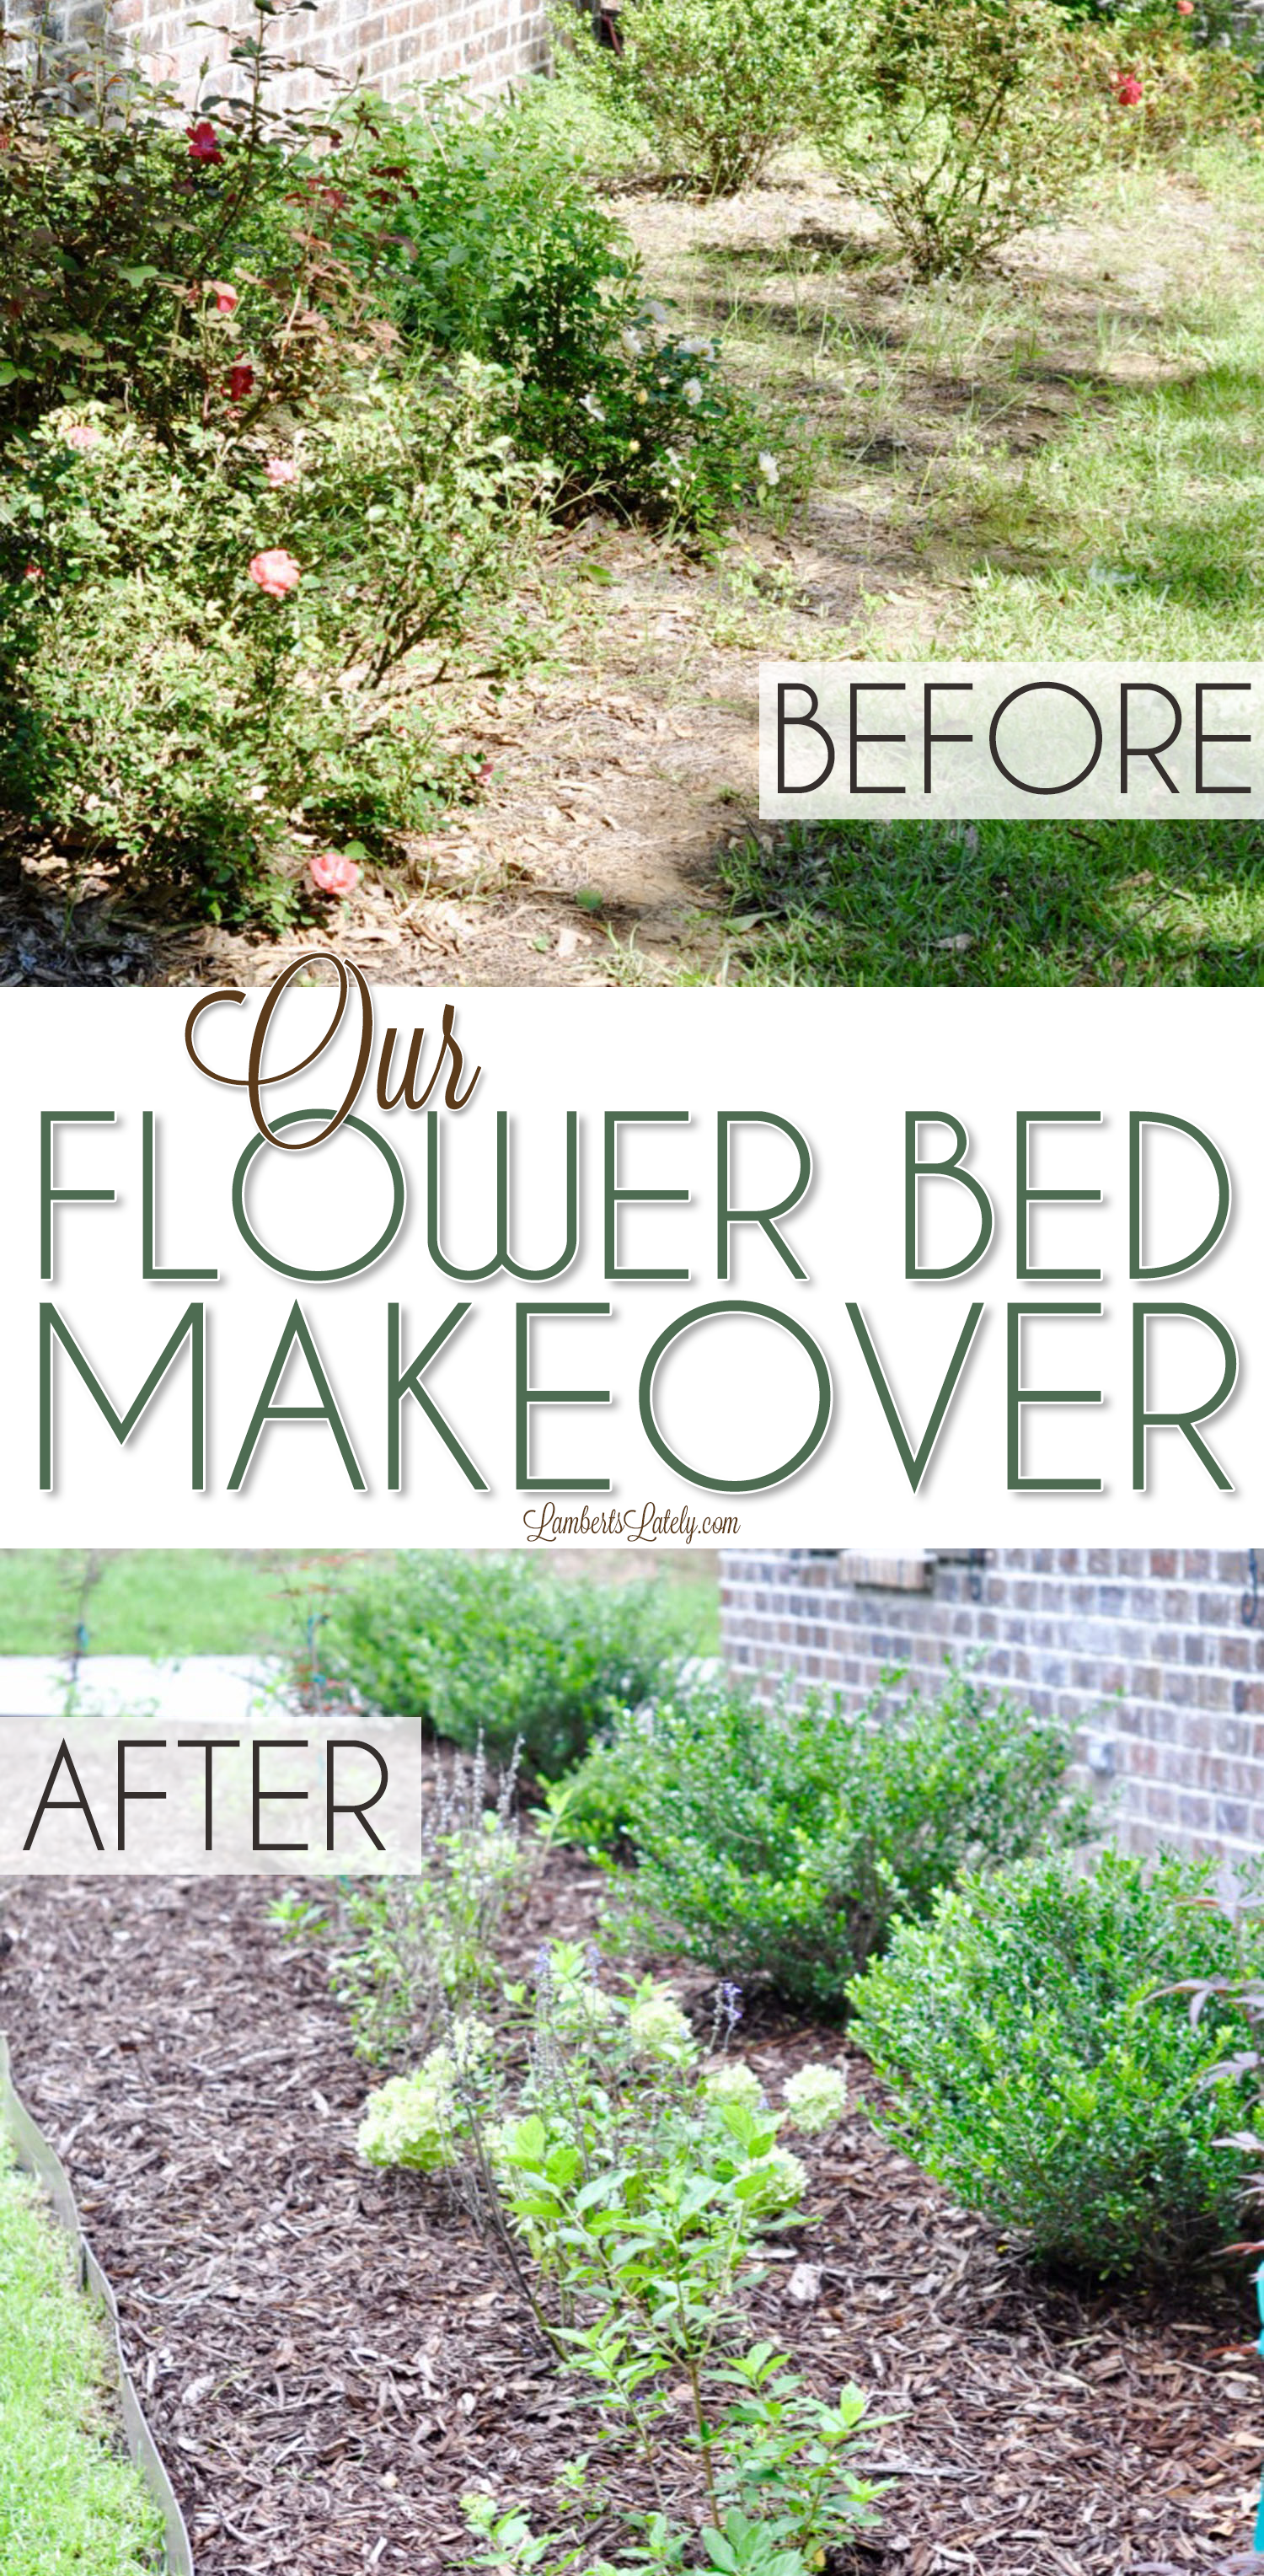 This flower bed makeover shows how to design and DIY your own beds to add major curb appeal! It goes through plants used, edging, and how to work with existing spaces to make your front yard gorgeous (and easy to upkeep).